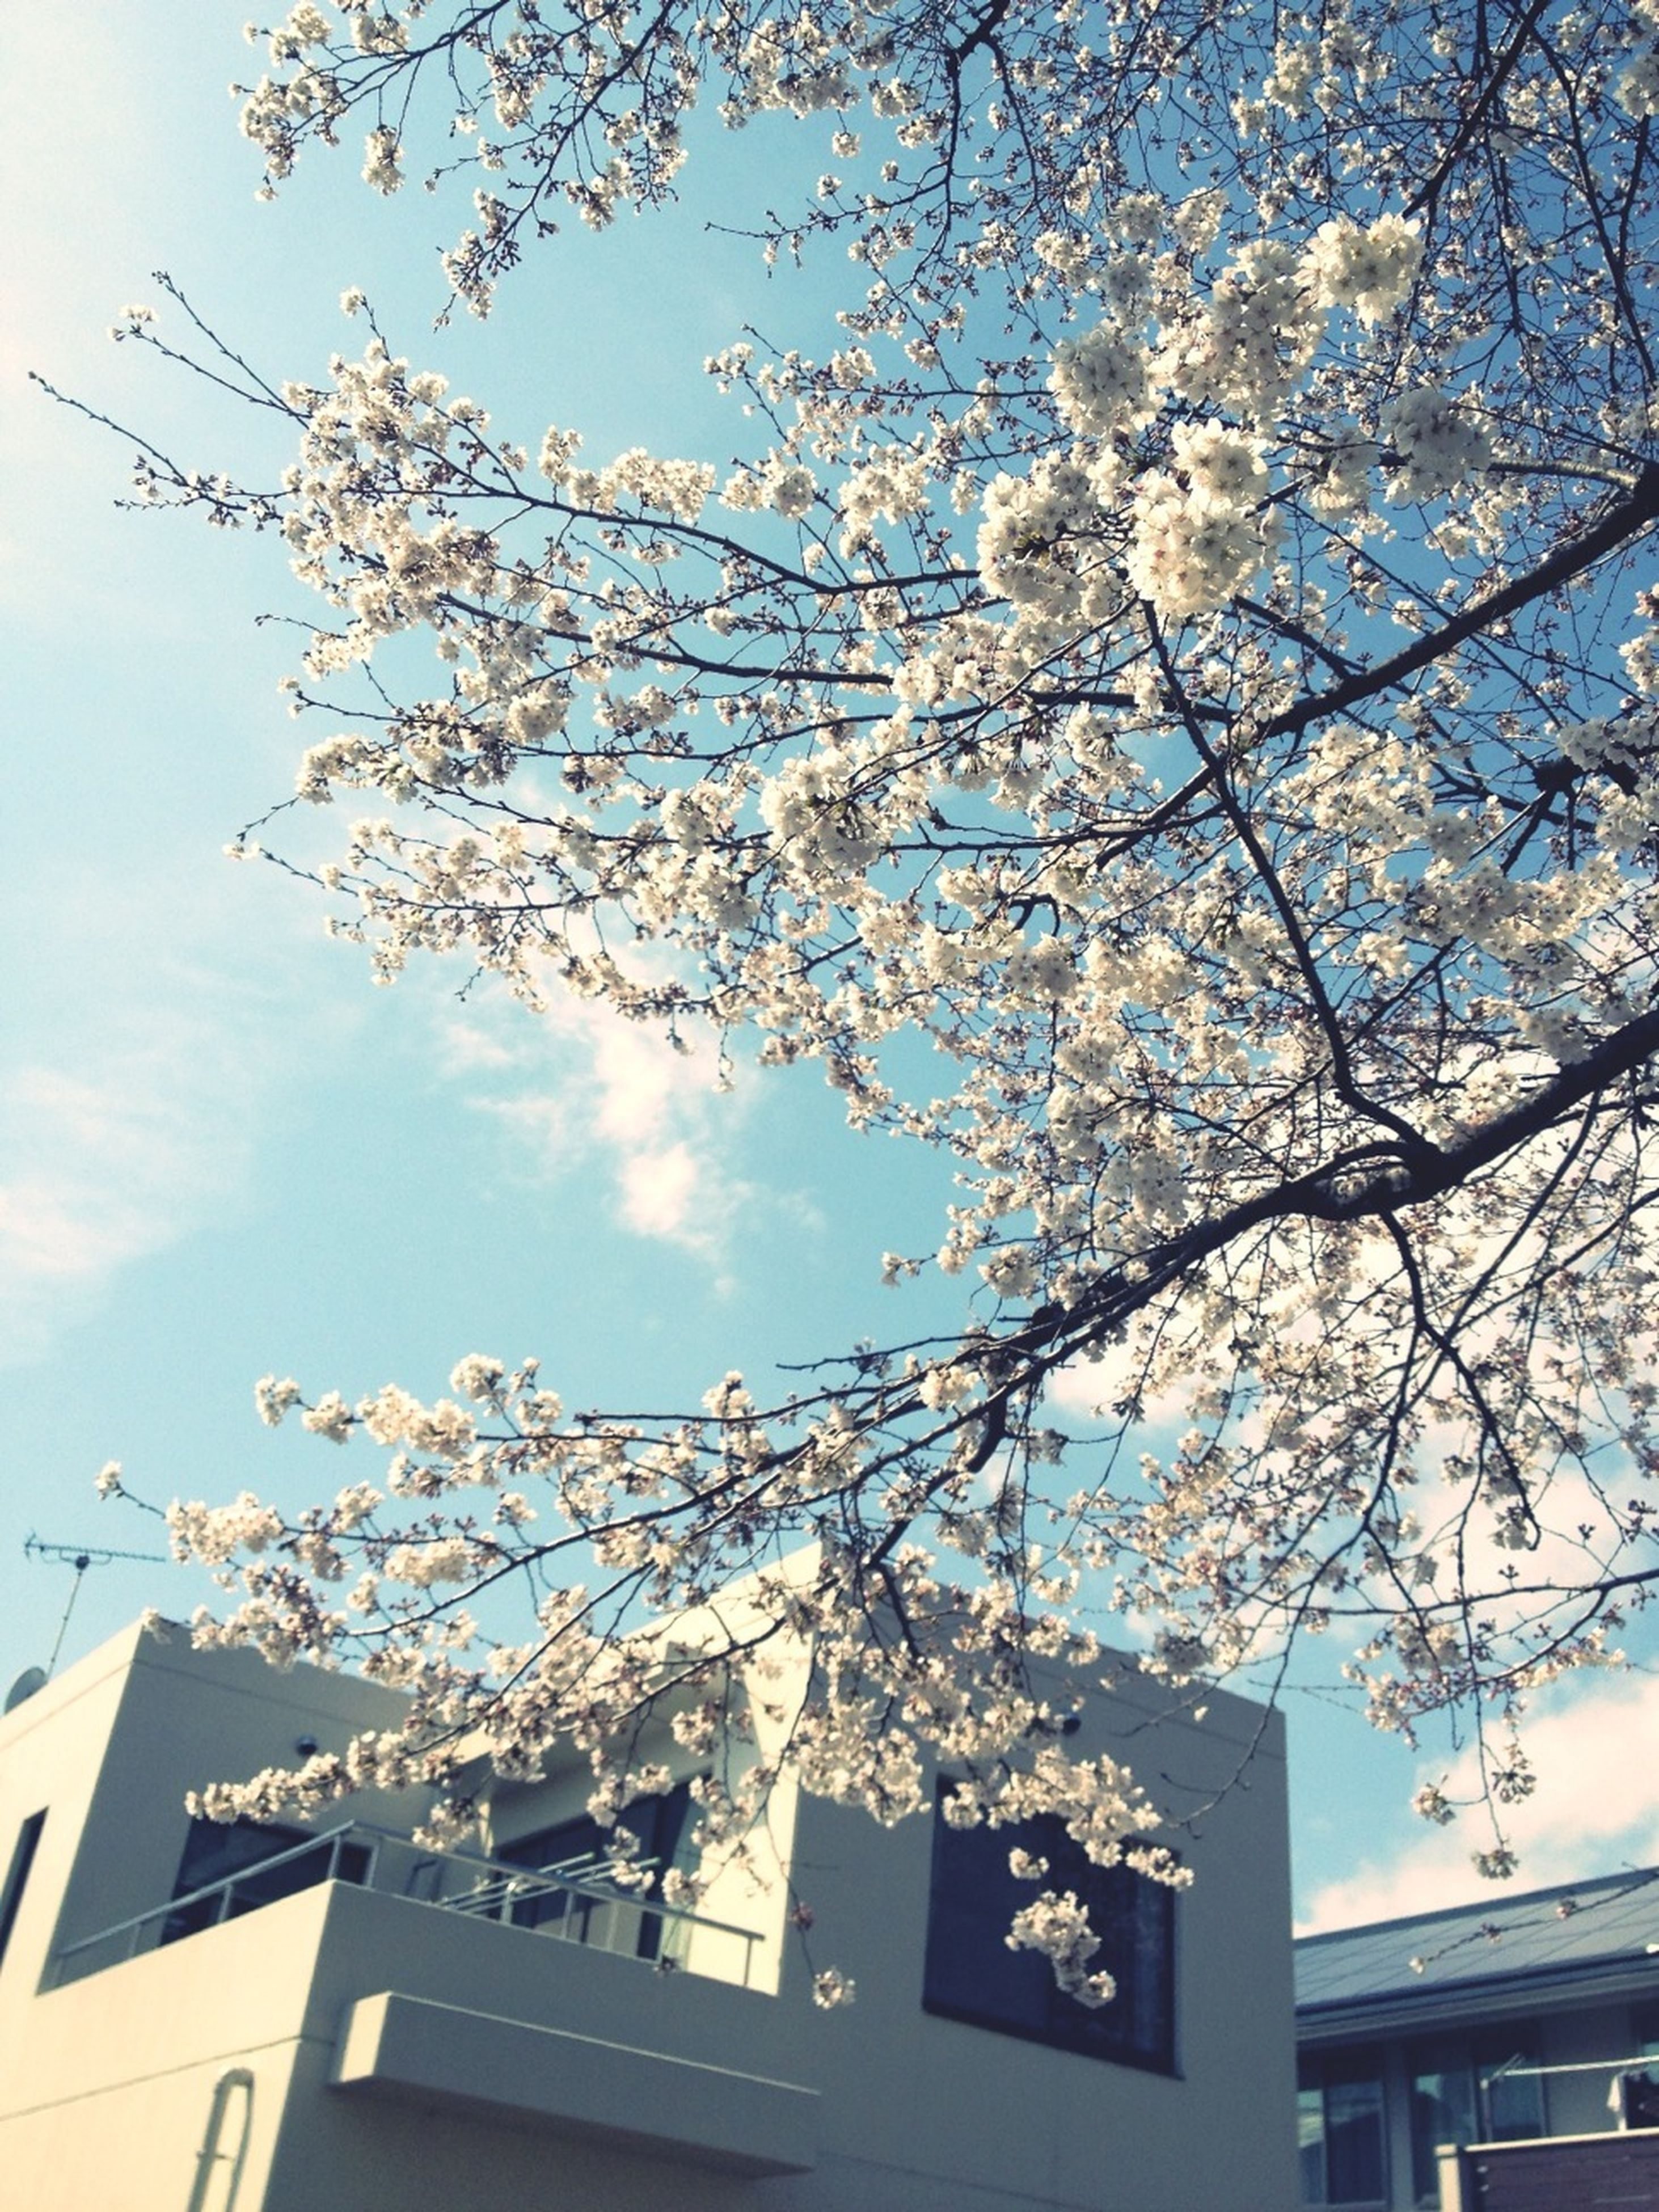 low angle view, building exterior, tree, branch, architecture, built structure, sky, flower, cherry blossom, cherry tree, growth, city, nature, bare tree, blossom, day, outdoors, building, no people, house